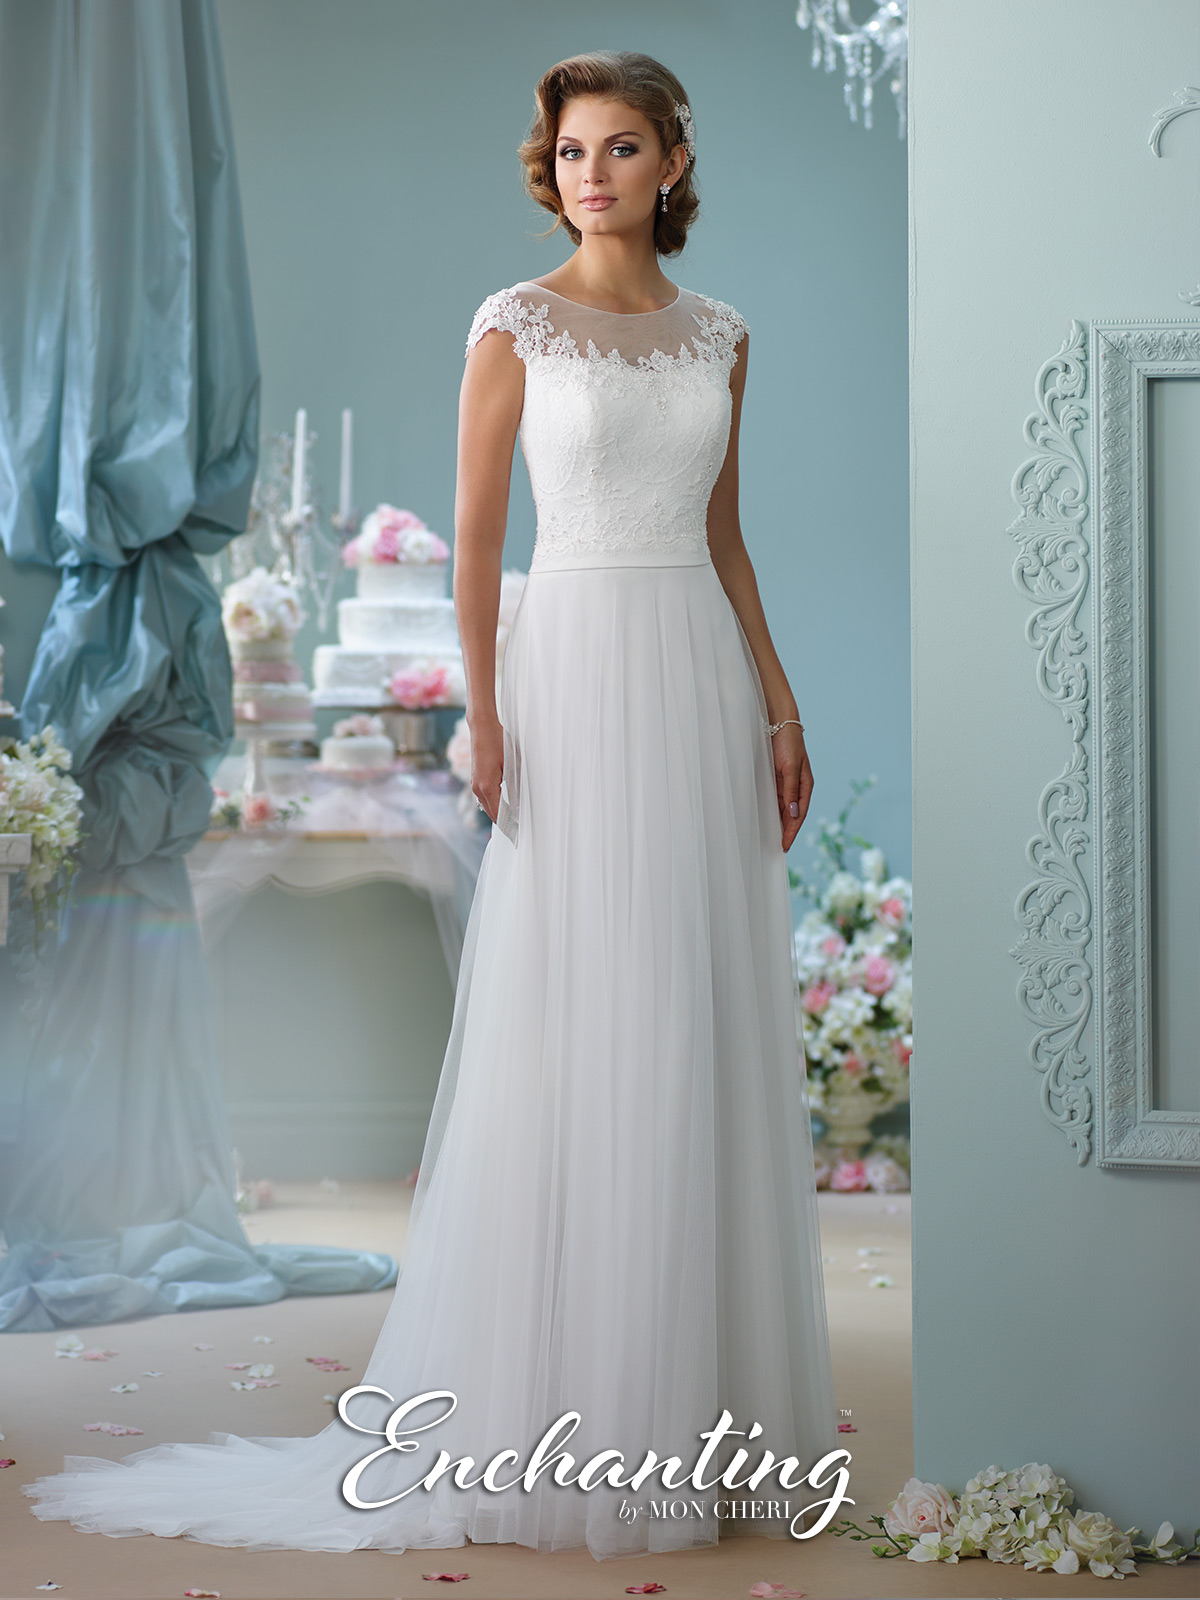 Colorful Party Dresses Dublin Composition - All Wedding Dresses ...